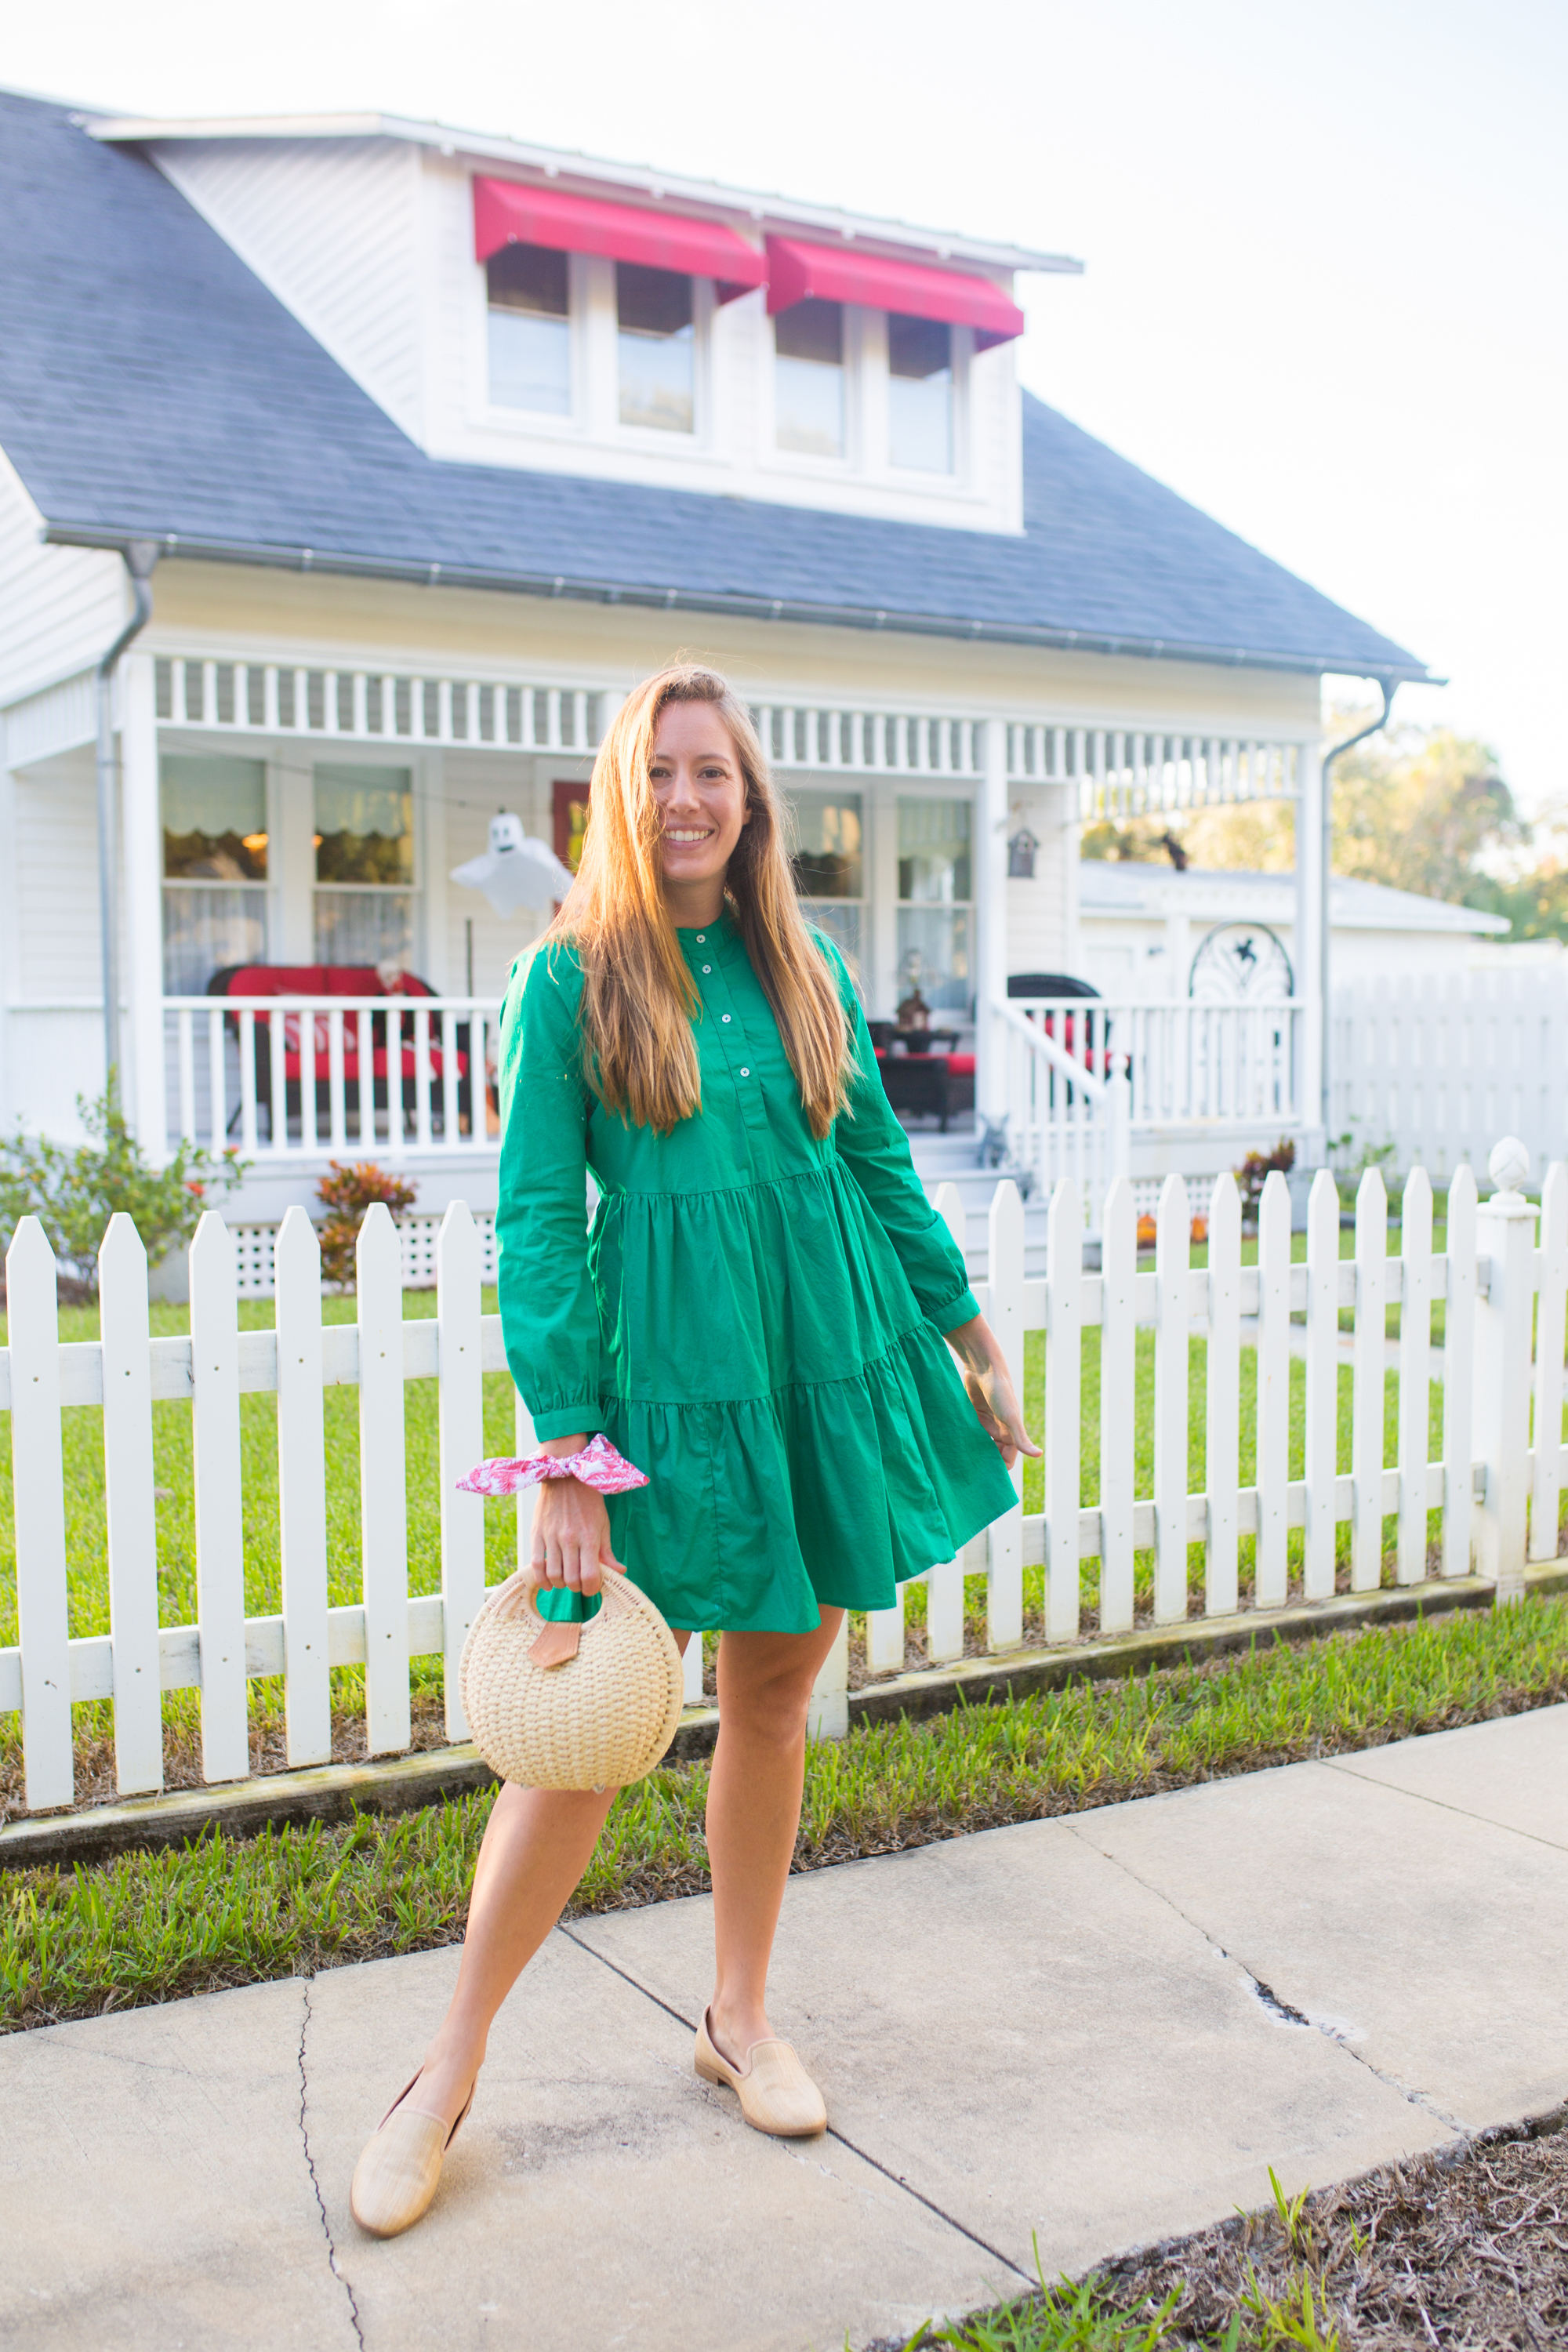 Long Sleeved Green Dresses for Winter / Winter Dress Ideas / Cold Weather Dresses / Cute Winter Dresses / Mini Dress - Sunshine Style, A Florida Based Fashion and Lifestyle Blog